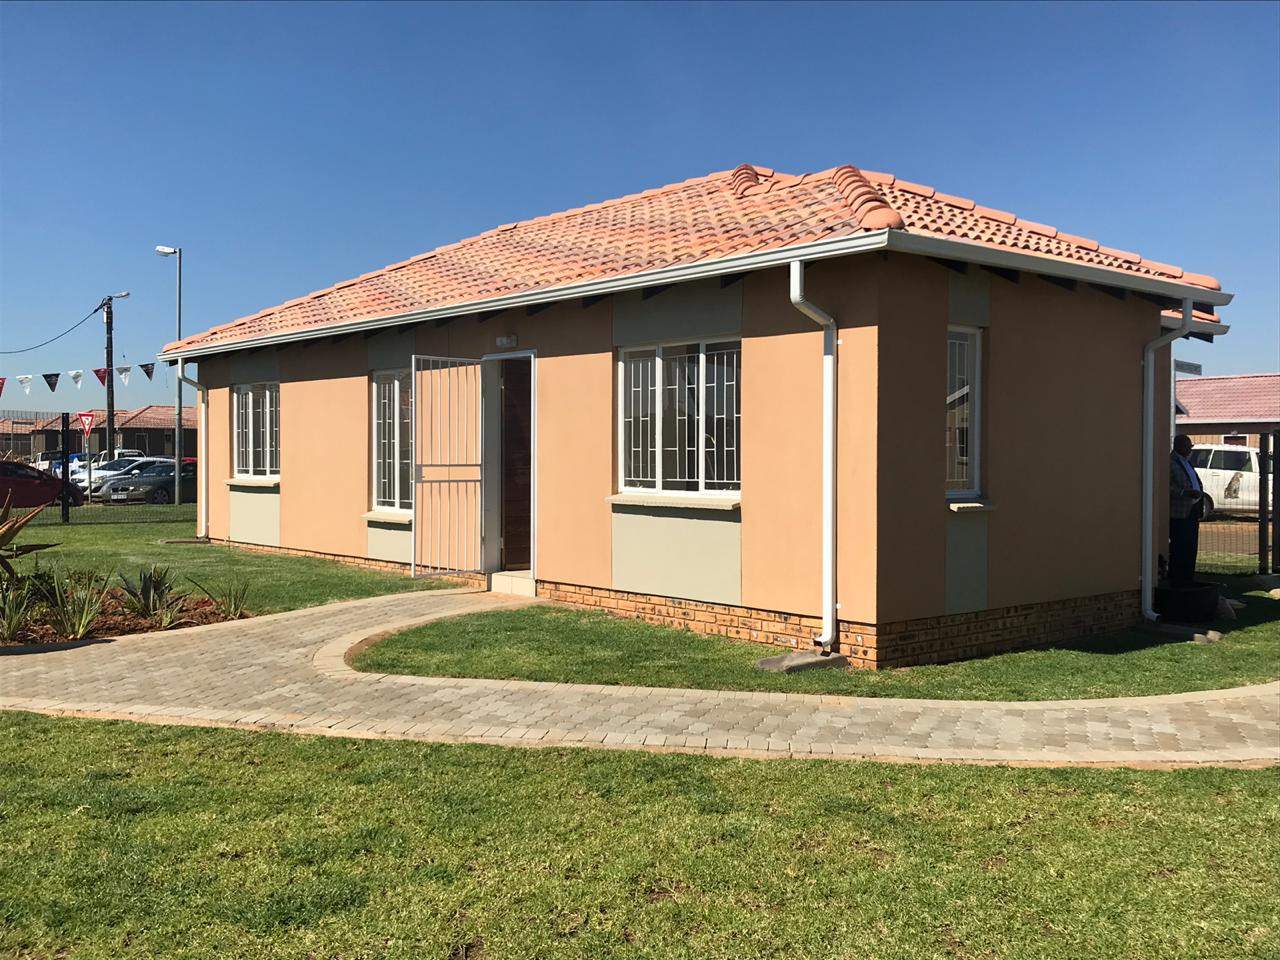 Affordable Living in Savanna City